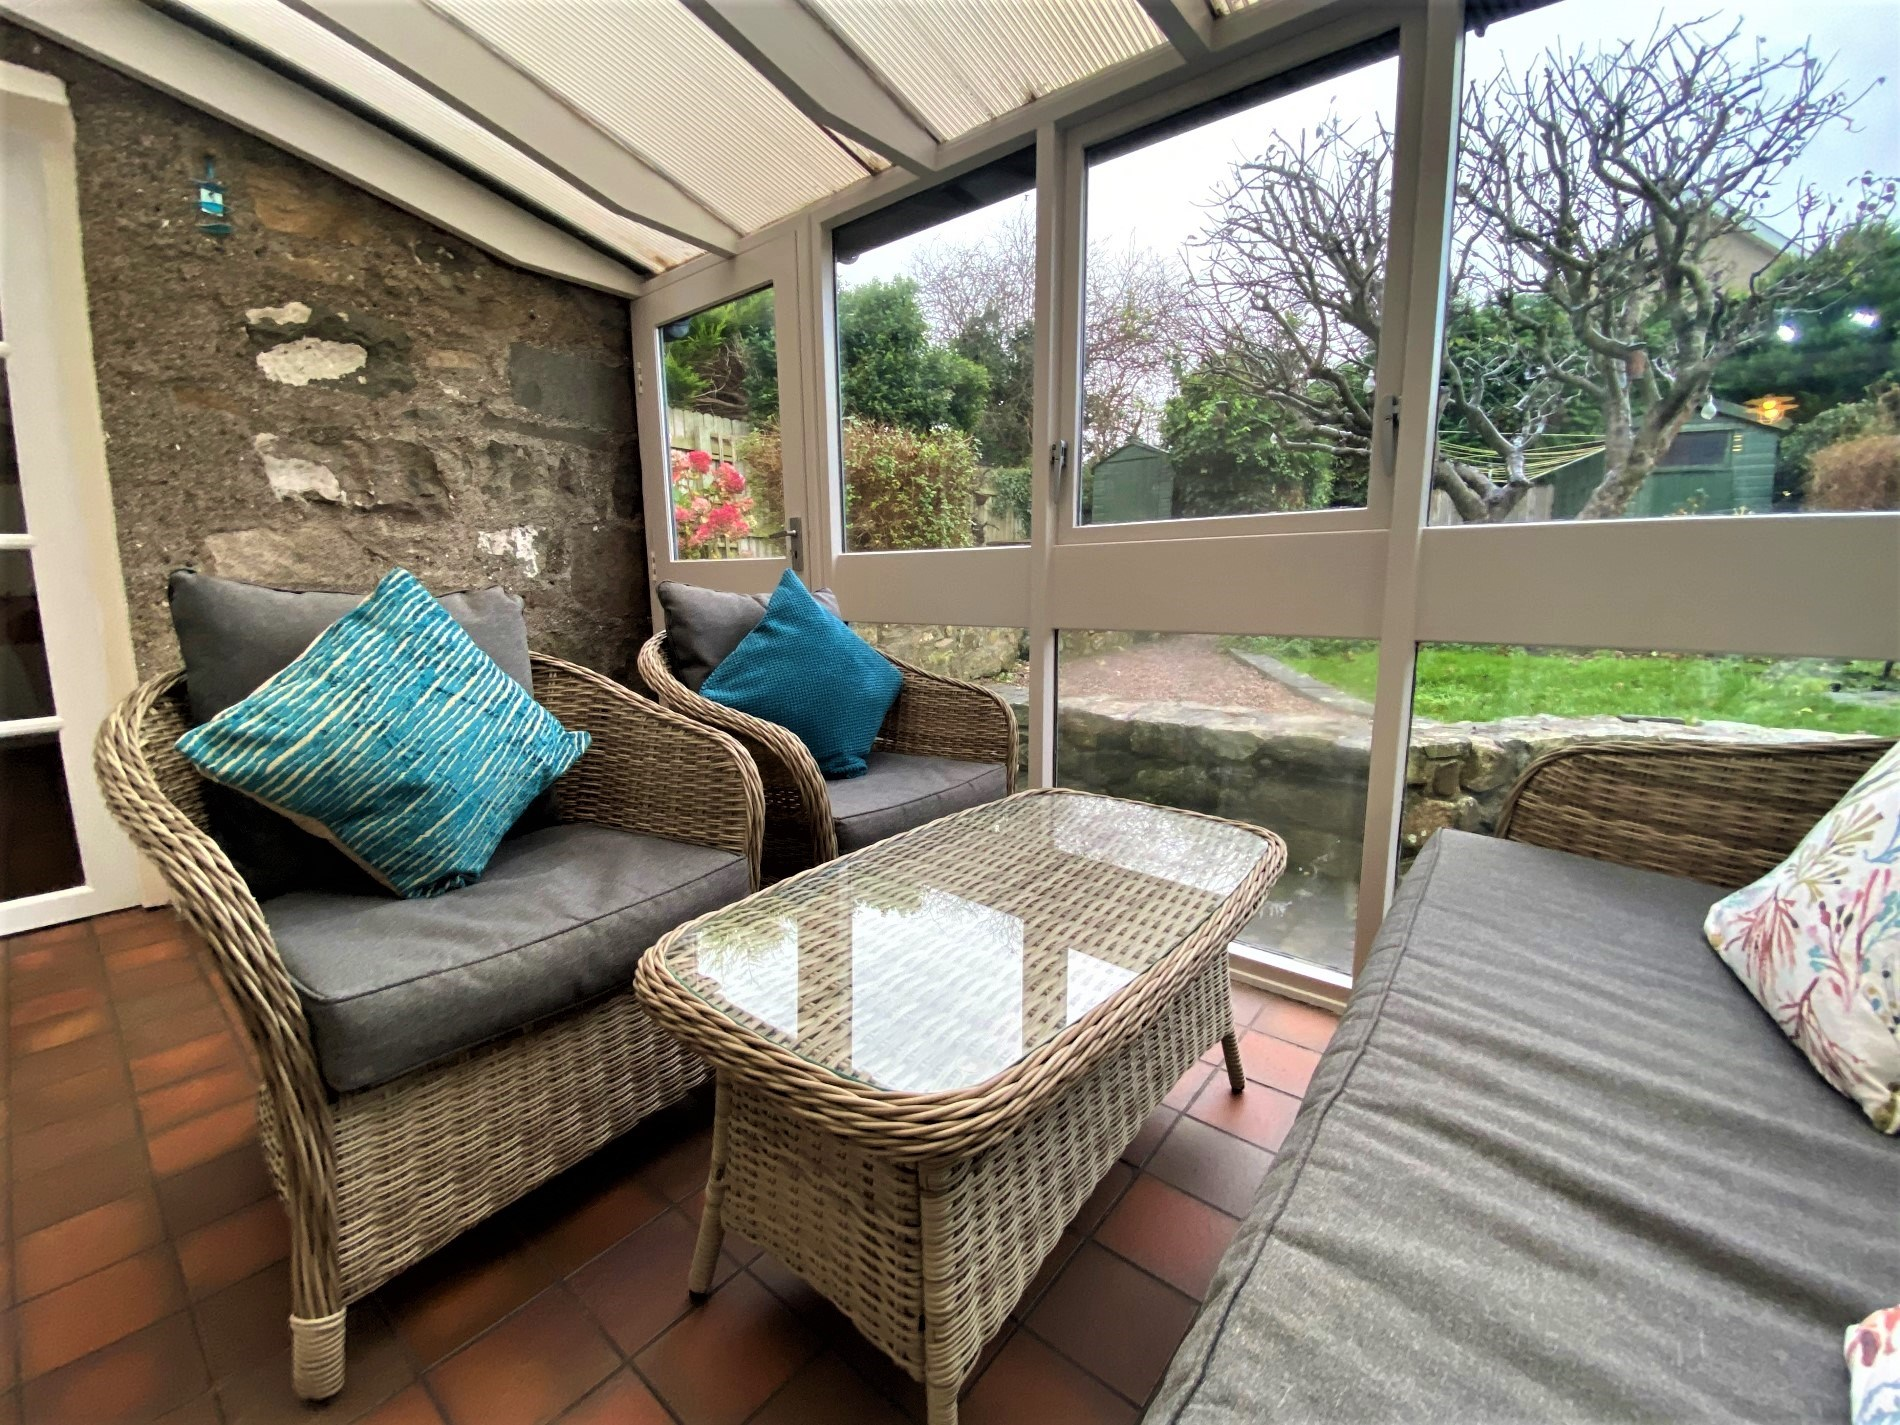 3 Bedroom Cottage in Pwllheli, Snowdonia, North Wales and Cheshire